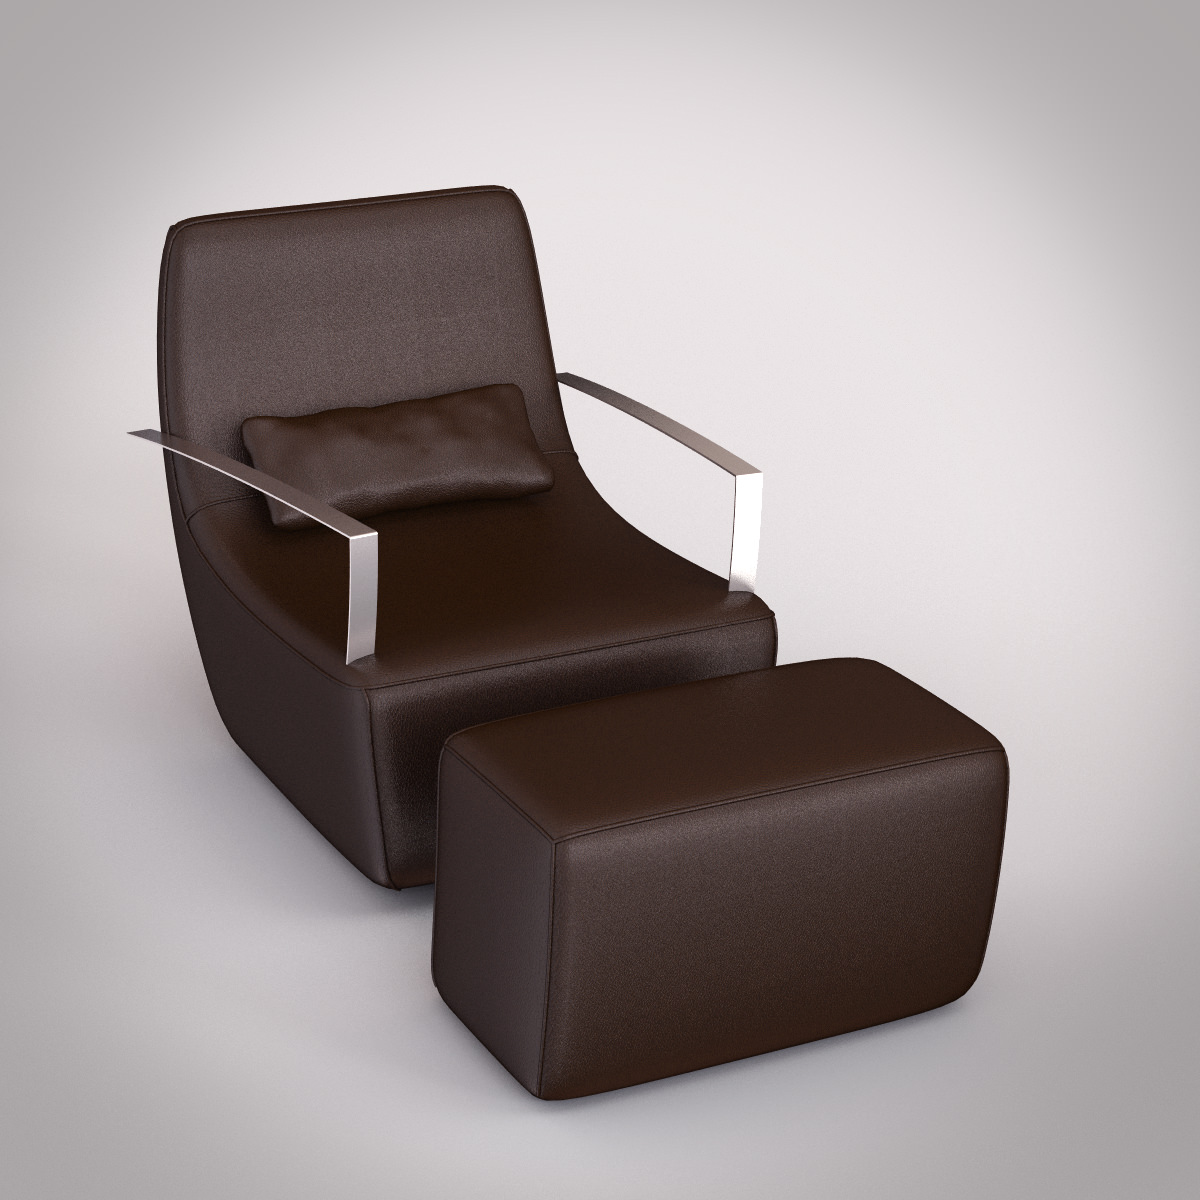 ligne roset poltrone neo armchair 3D Models - CGTrader.com